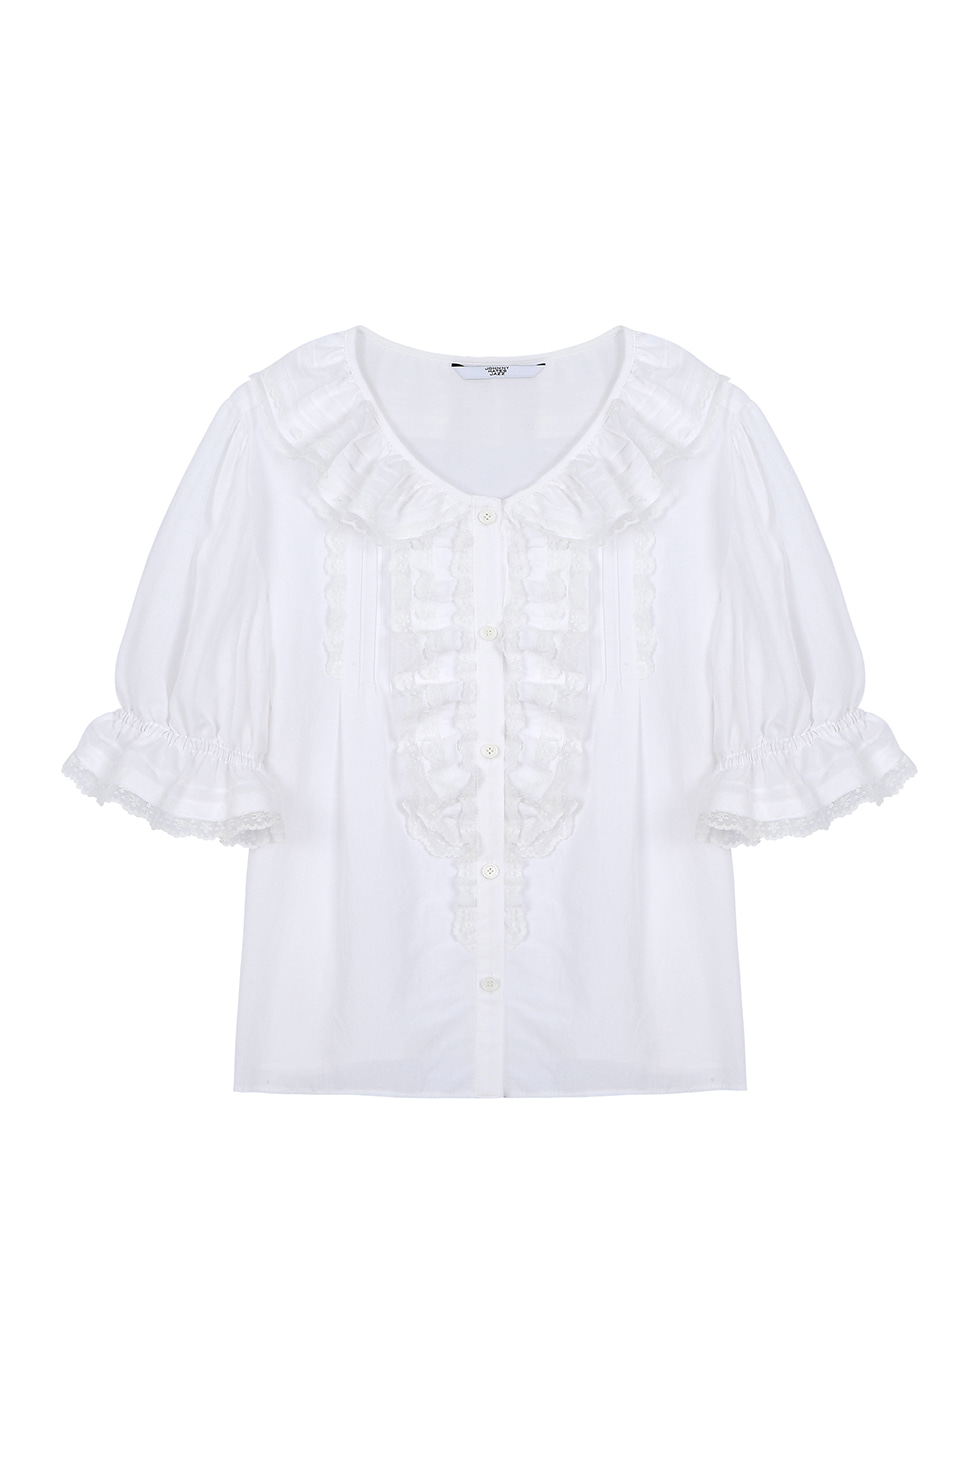 LACE TUCK COTTON BLOUSE - WHITE